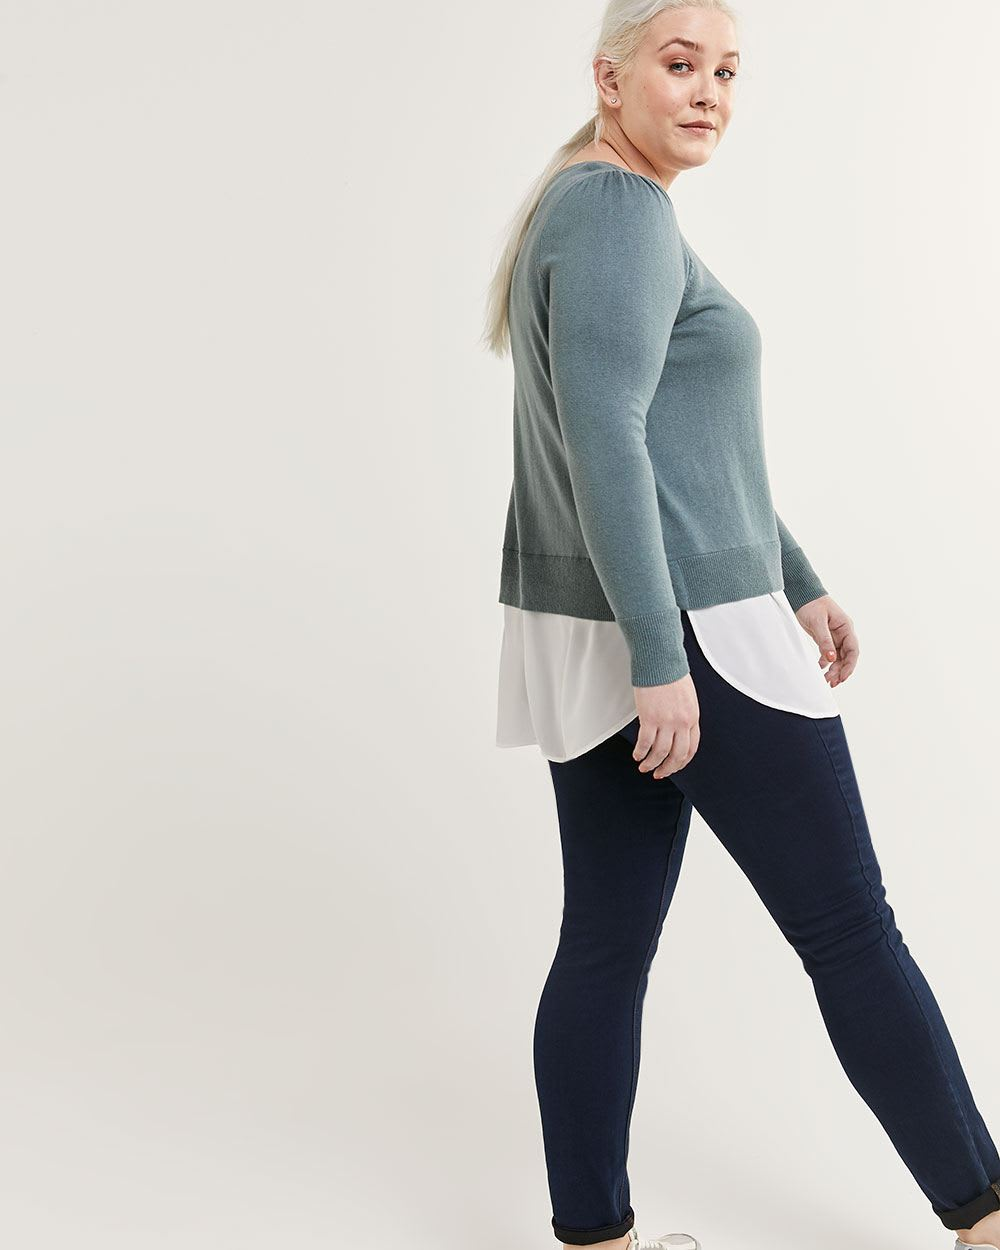 Fooler Top Sweater - Petite